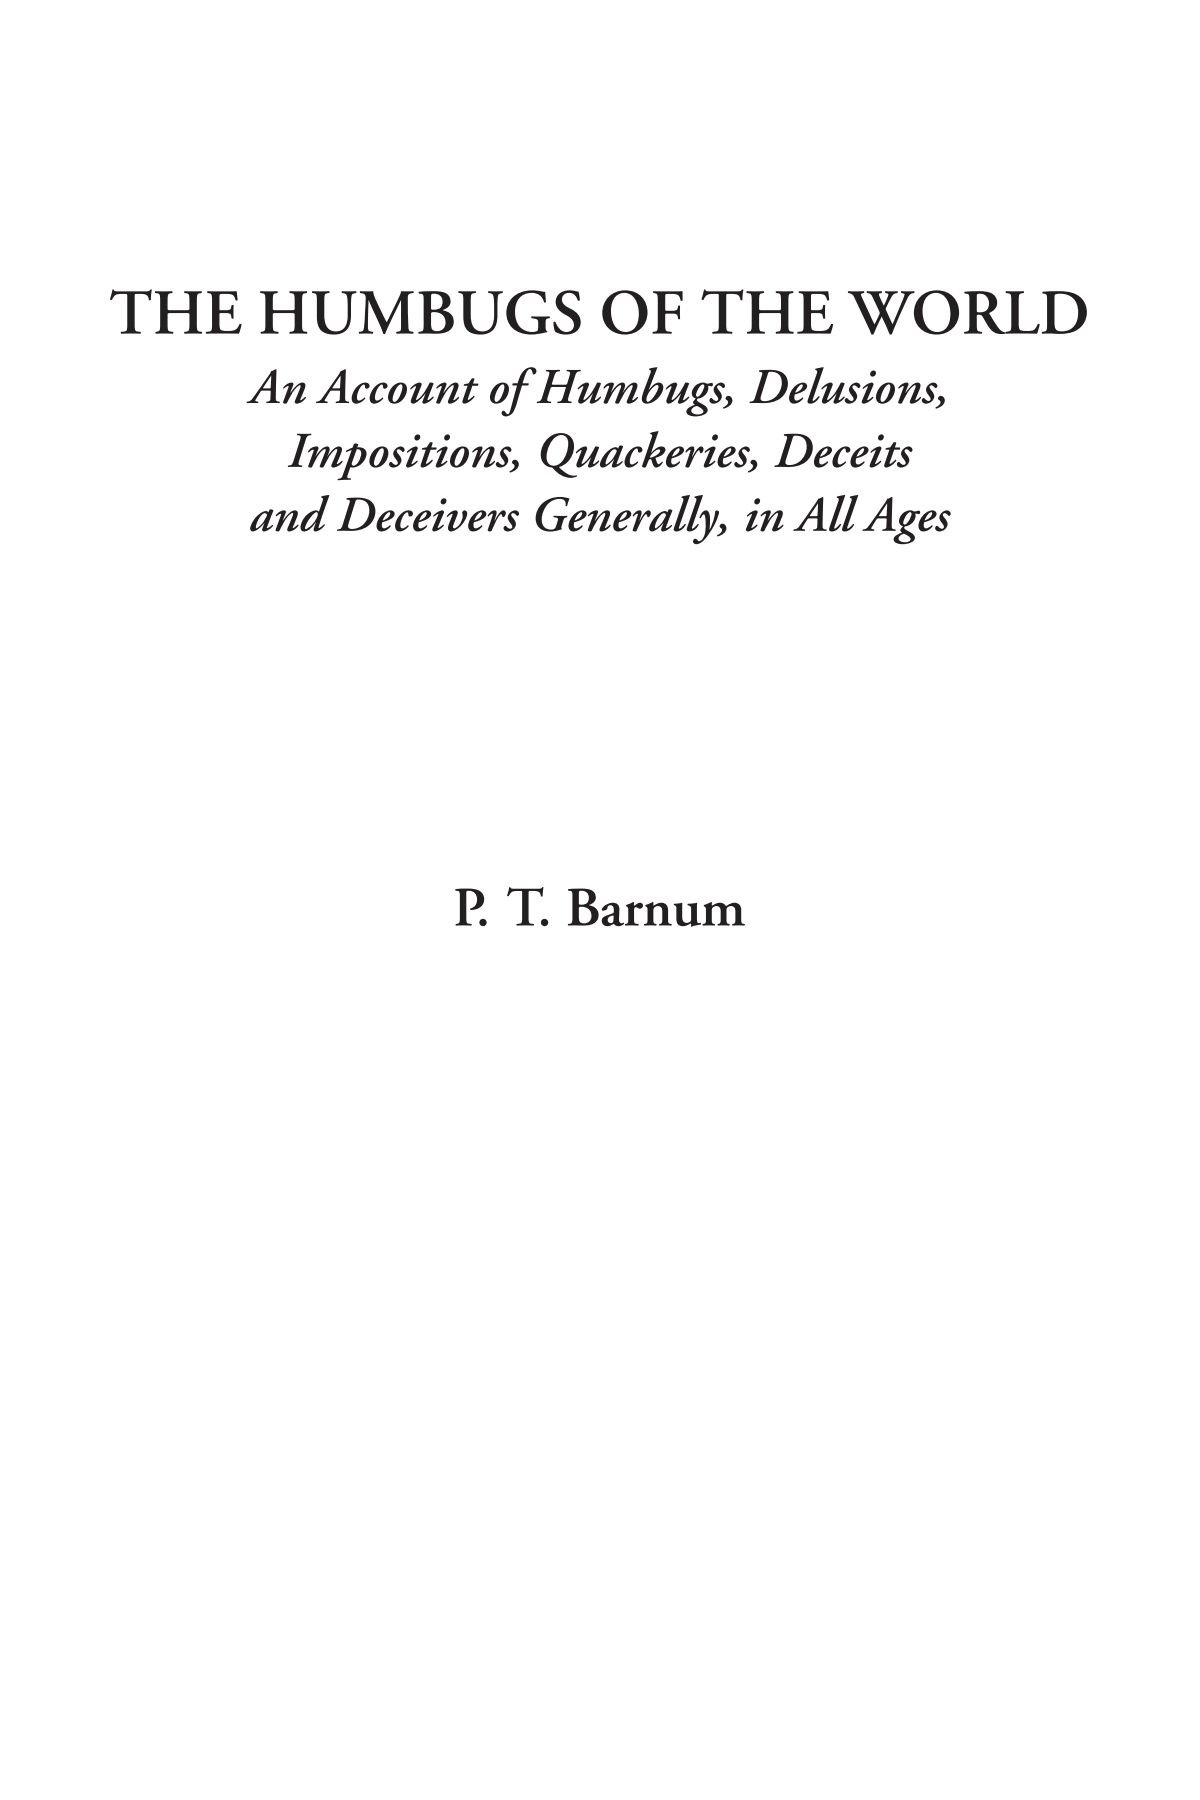 Read Online The Humbugs of the World (An Account of Humbugs, Delusions, Impositions, Quackeries, Deceits and Deceivers Generally, in All Ages) pdf